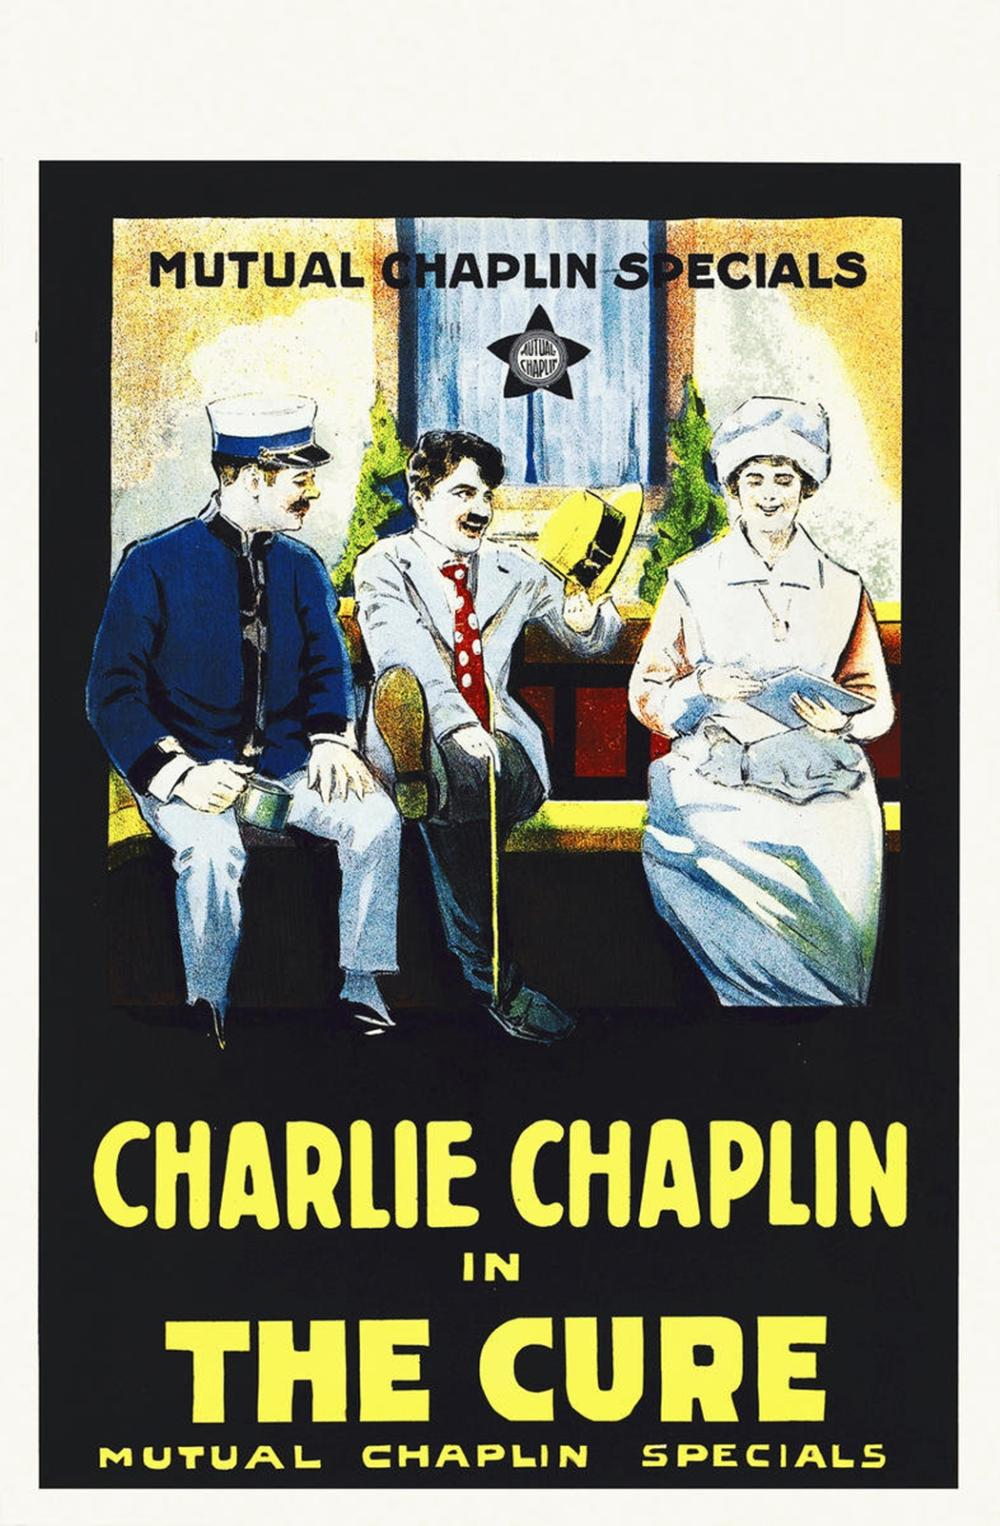 HOLLYWOOD PHOTO ARCHIVE CHAPLIN, CHARLIE, THE CURE